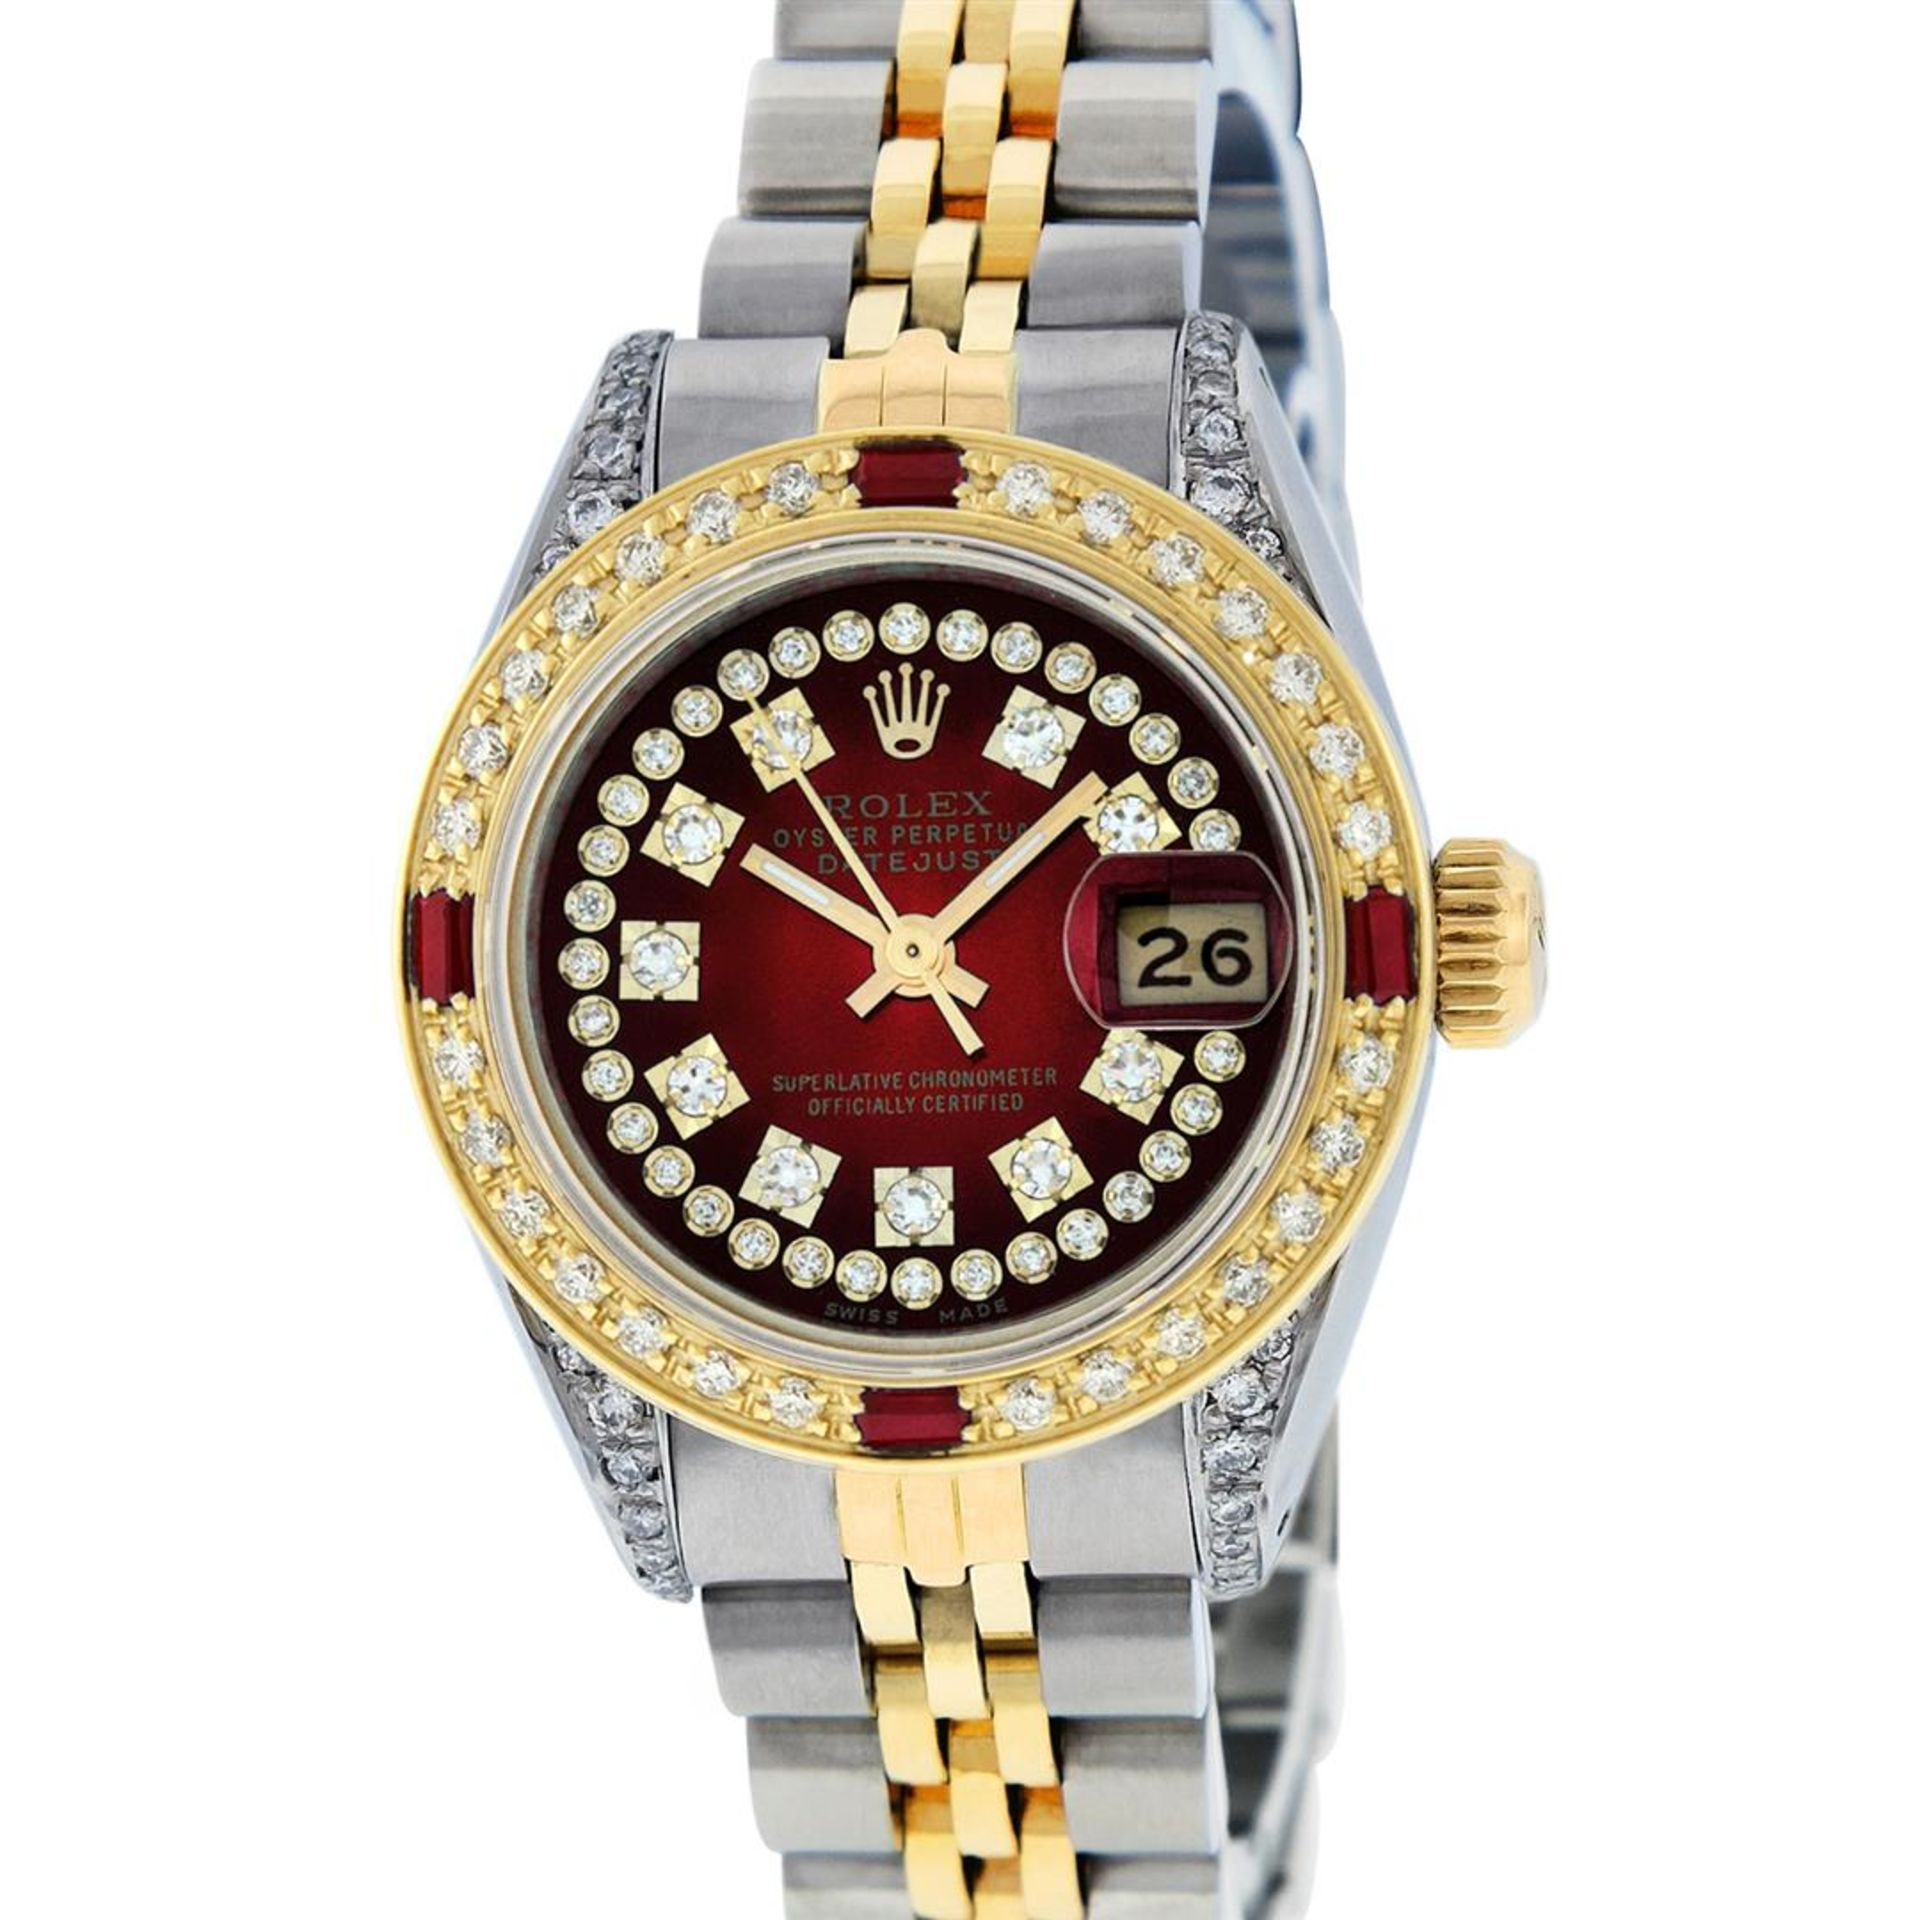 Rolex Ladies 2 Tone Red Vignette String Diamond Lugs & Ruby Datejust Wriswatch - Image 2 of 7